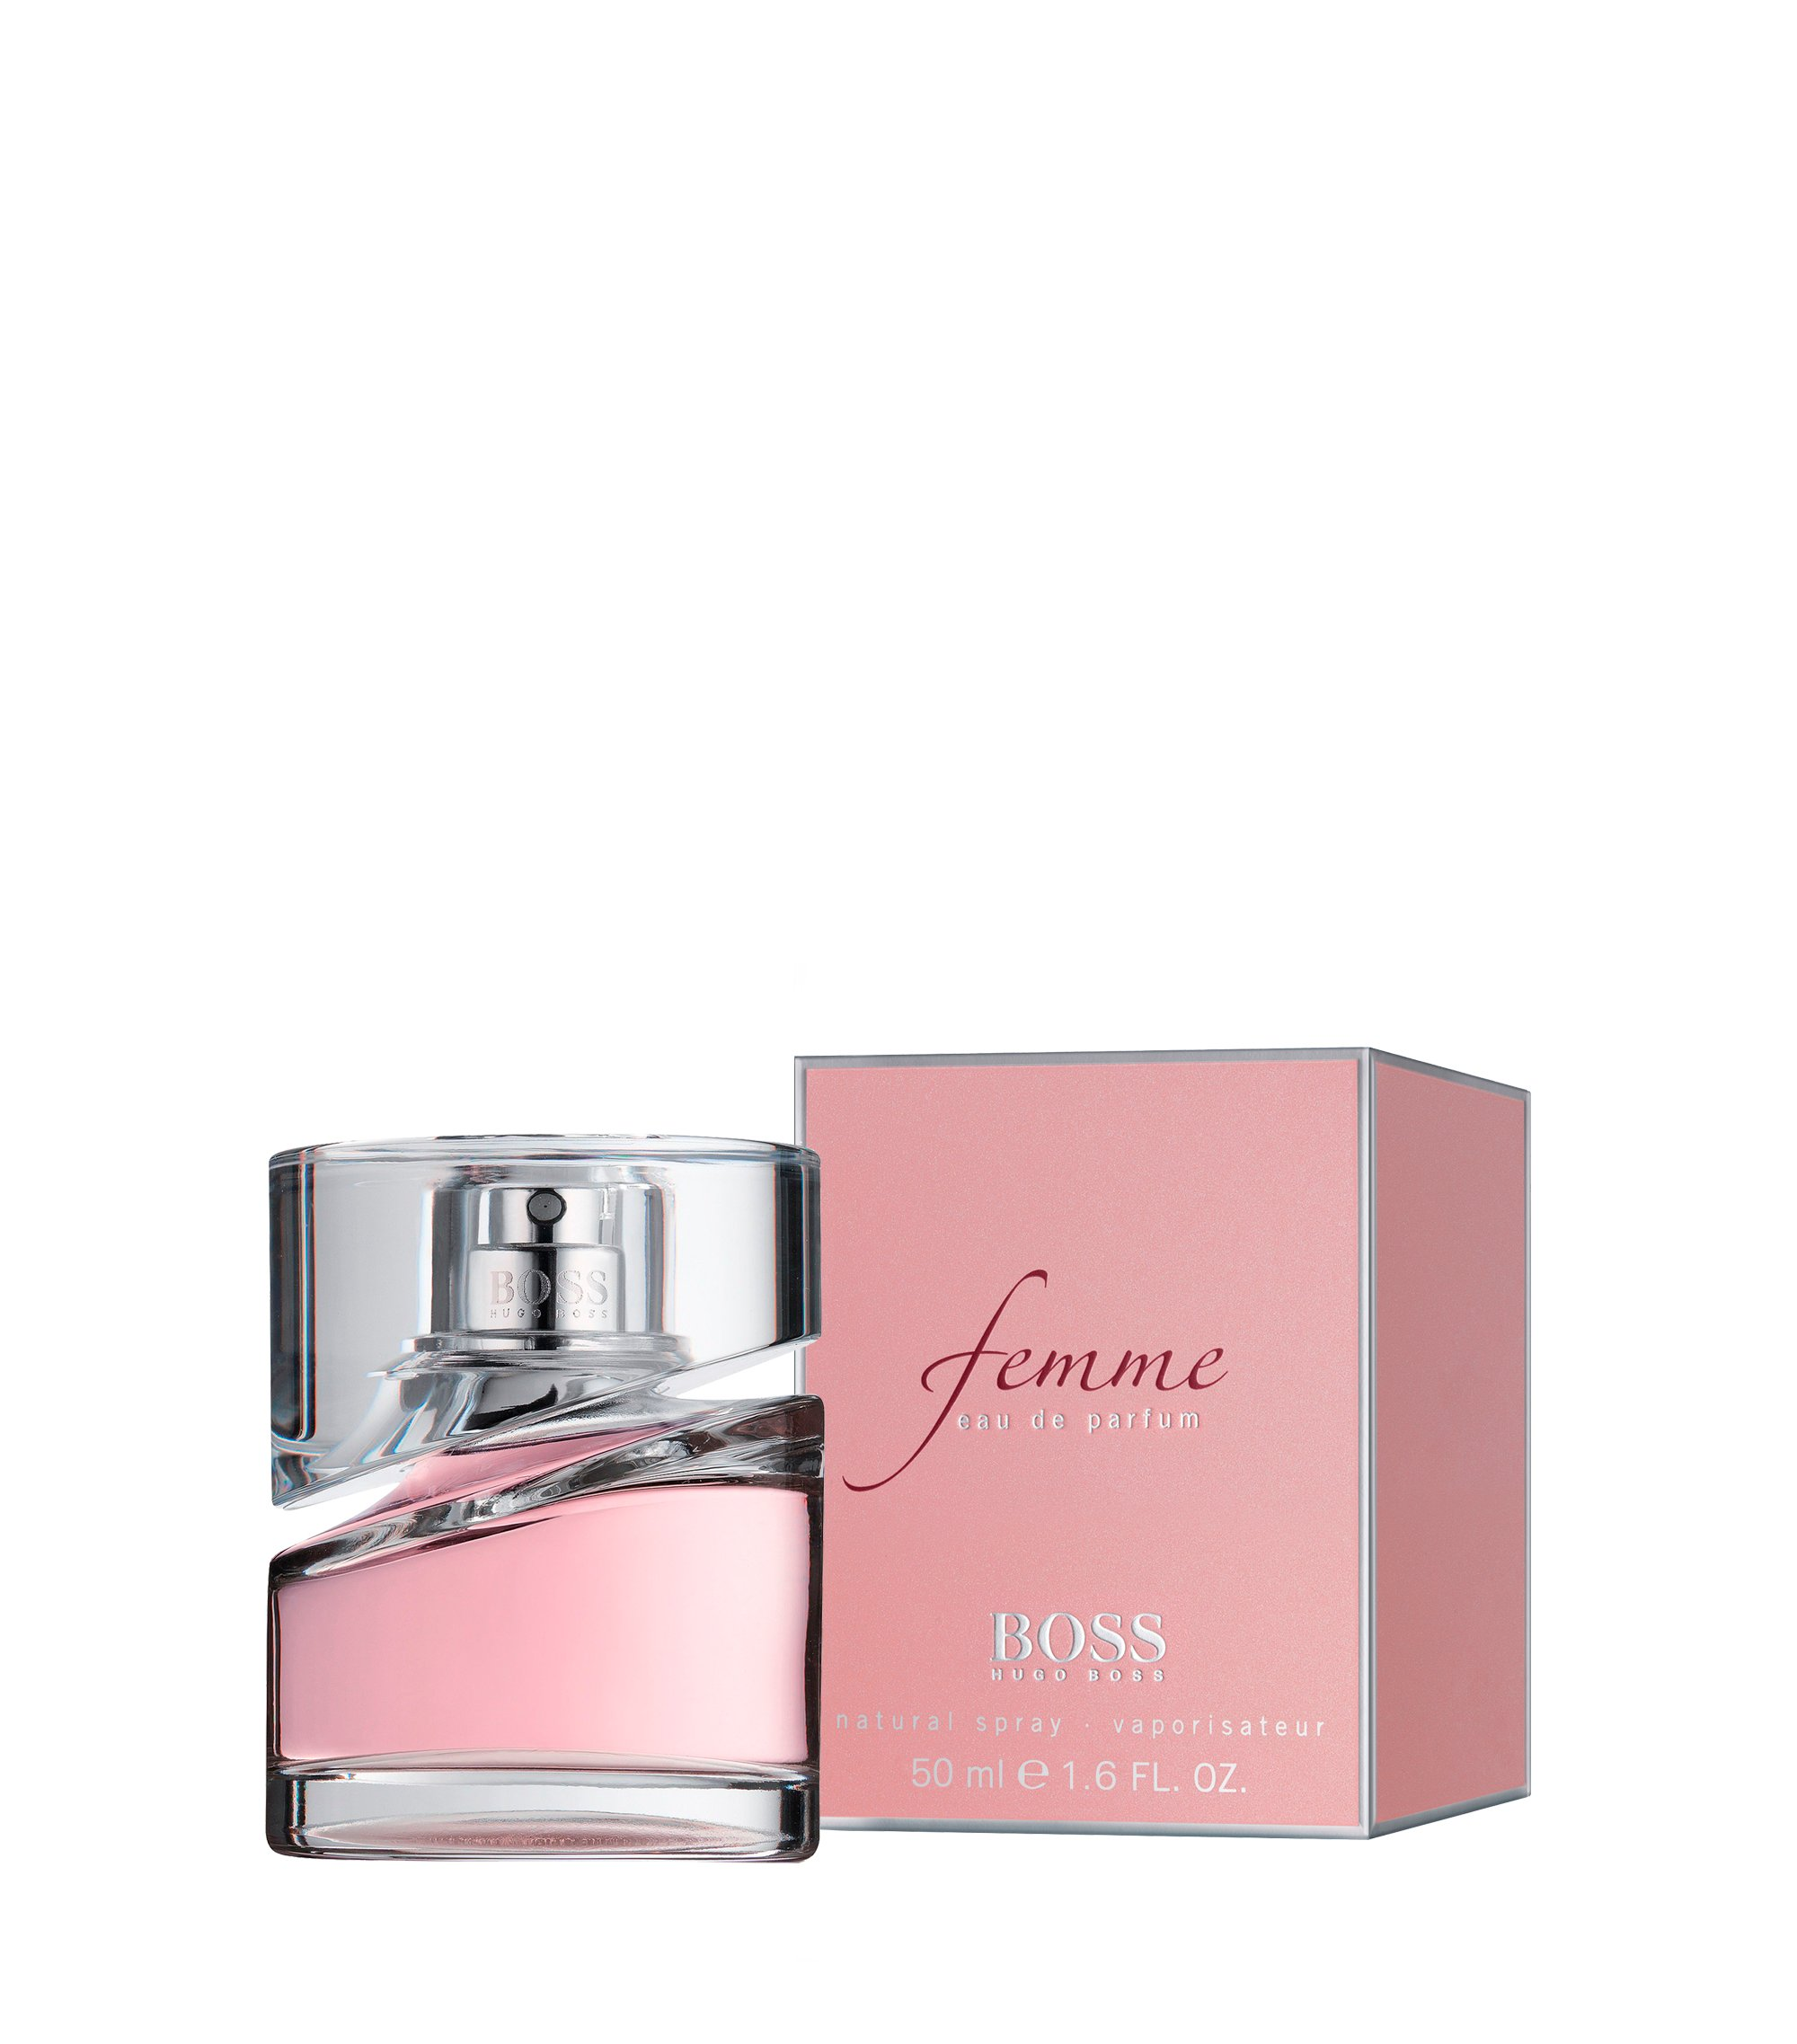 Femme by BOSS eau de parfum 50ml , Assorted-Pre-Pack